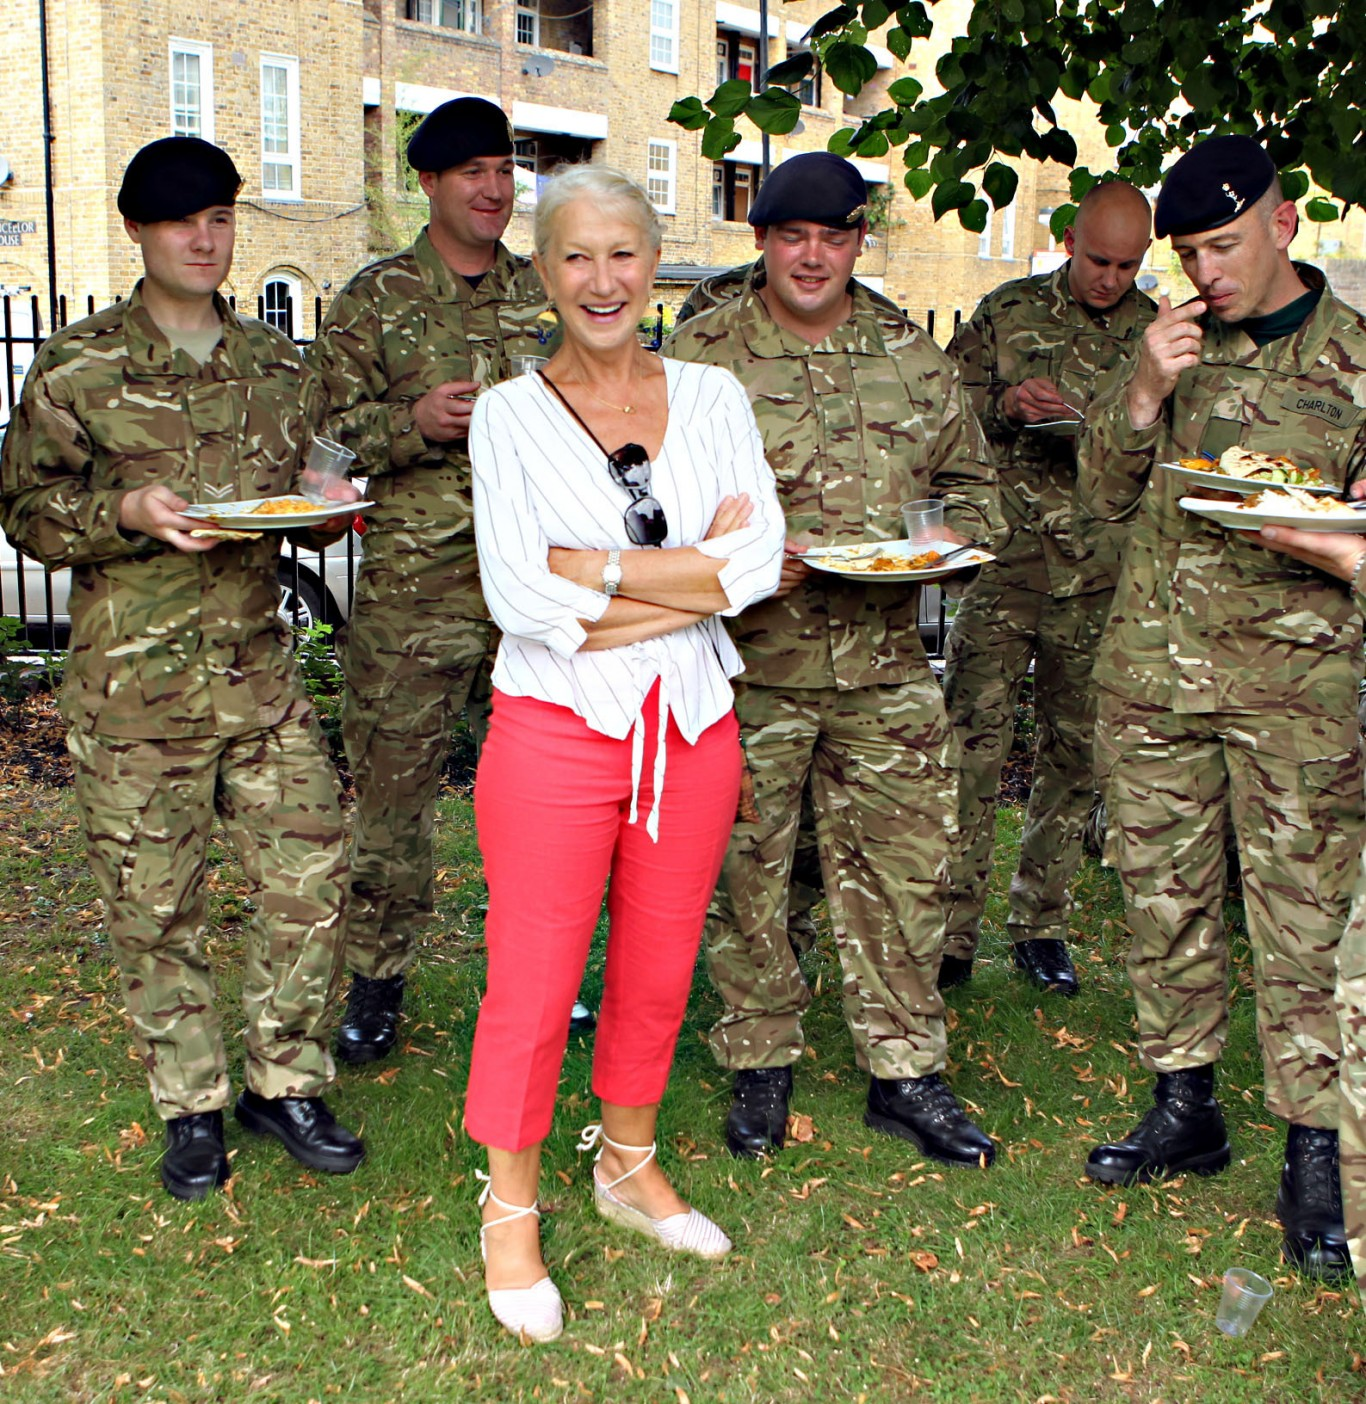 Dame Helen Mirren joins the military parade for armed services at the London 2012 temporary security camp in Wapping